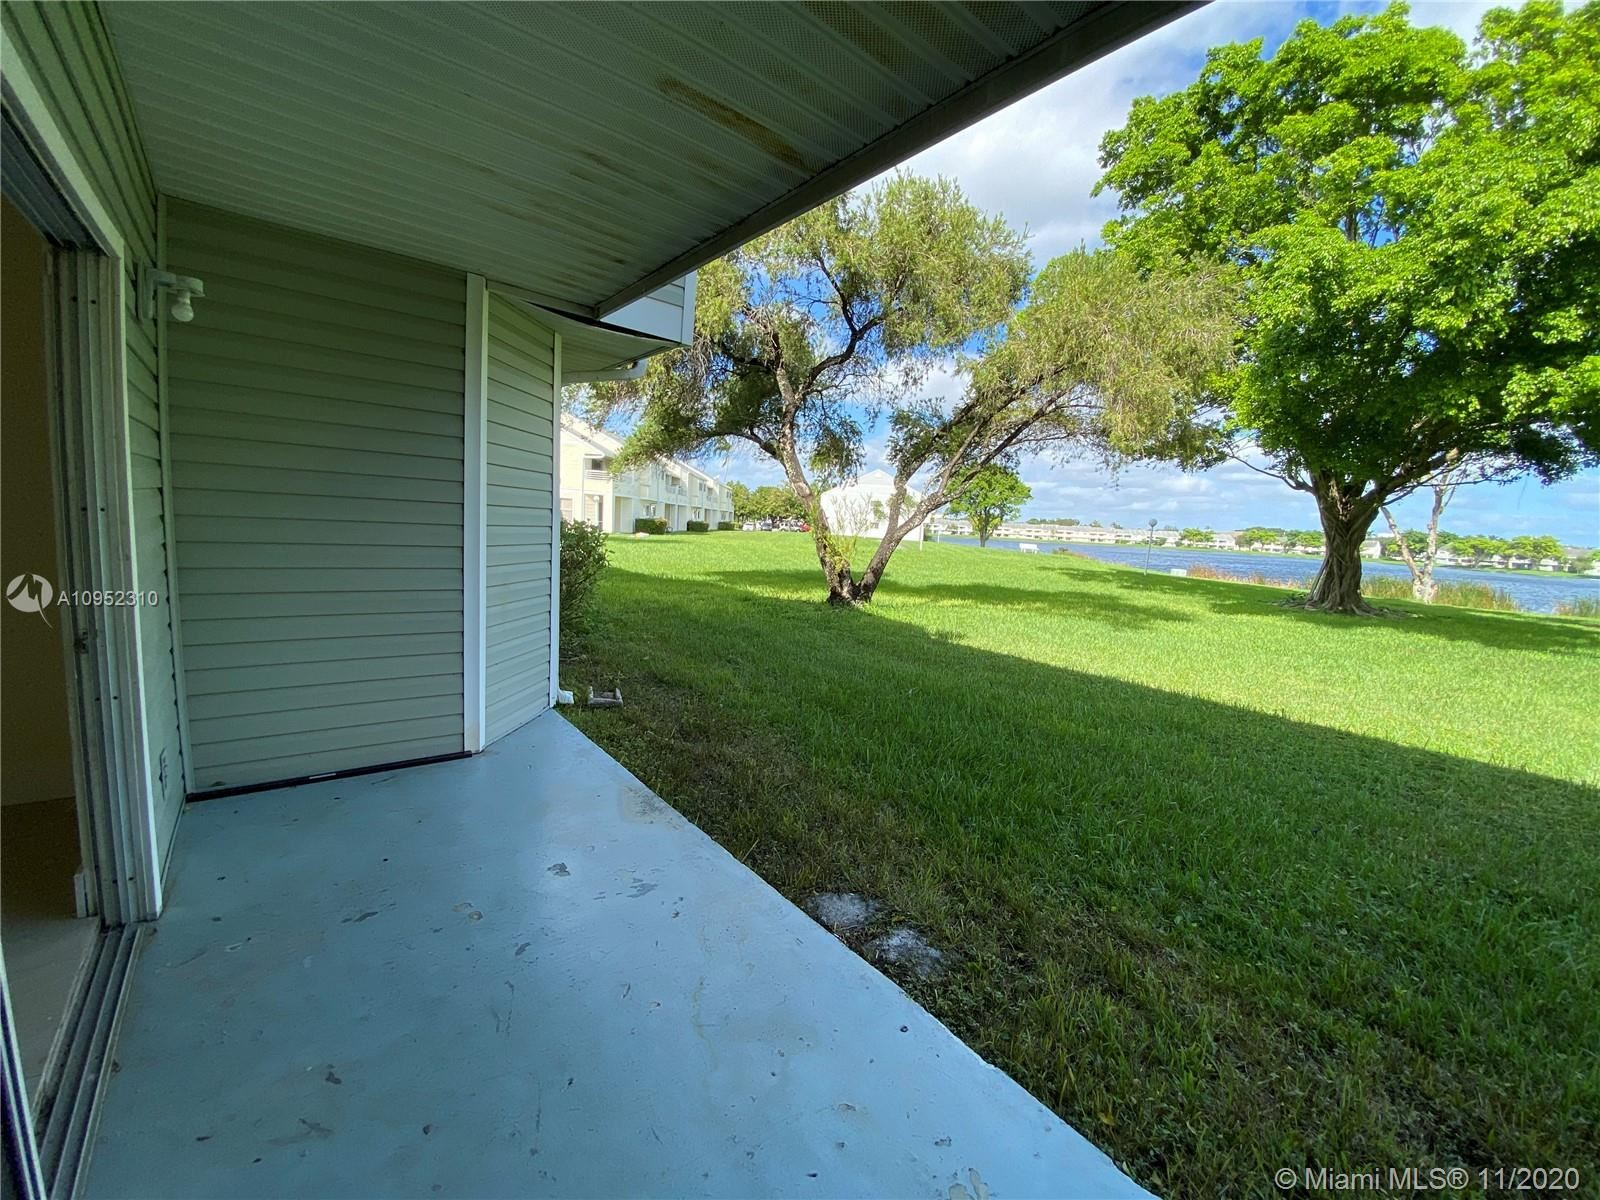 Photo of 3417 NW 44 St #105, Oakland Park, FL 33309 (MLS # A10952310)